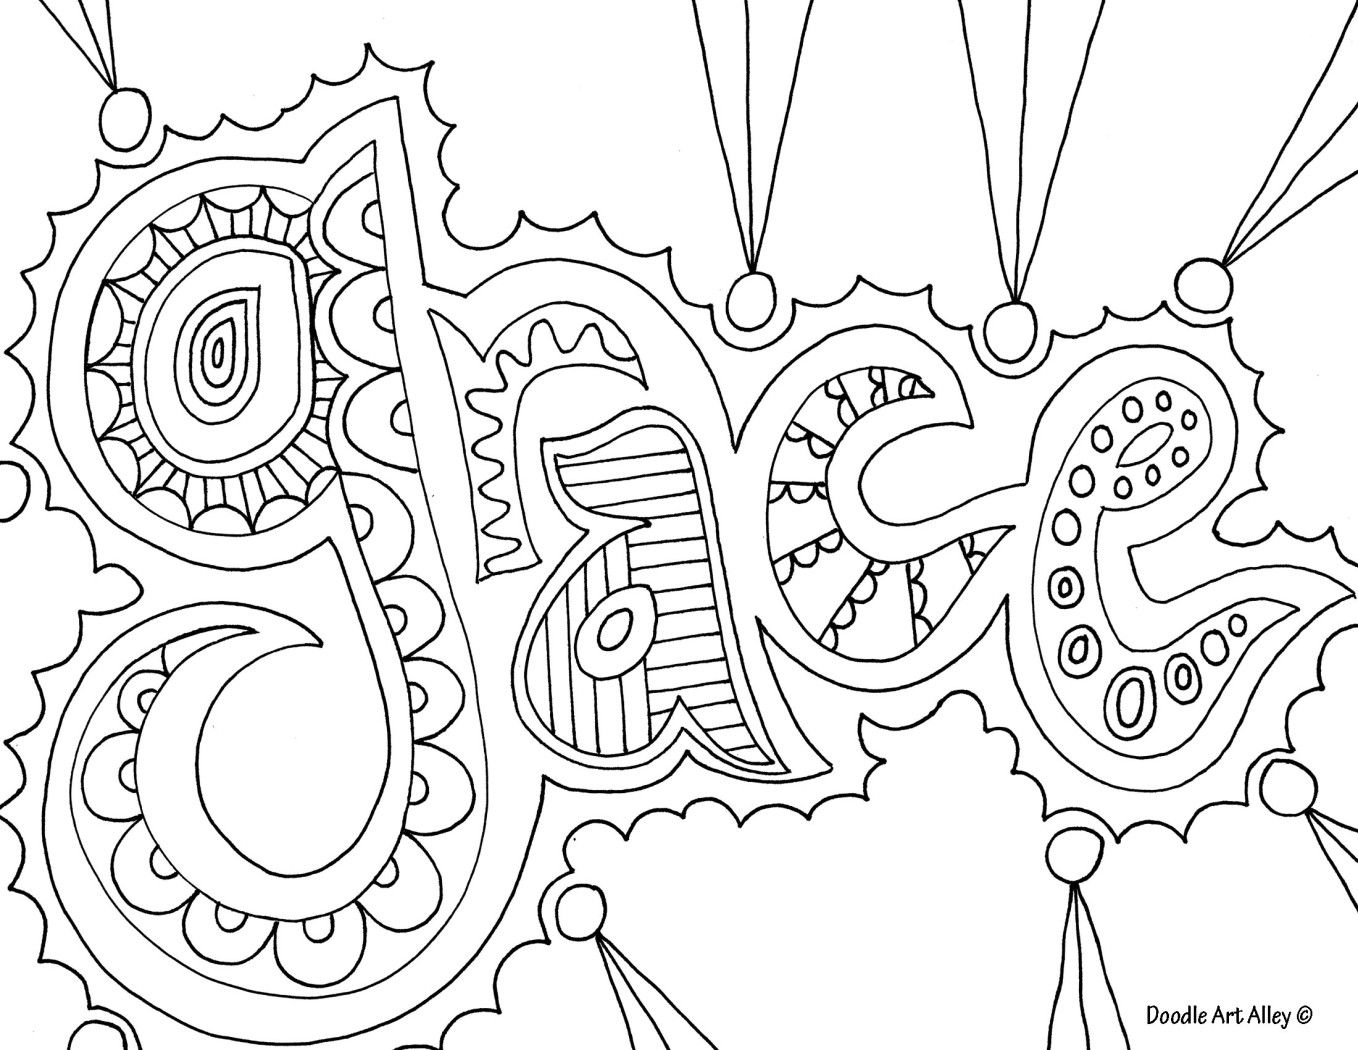 doodle art grace nice coloring page for older kids sunday